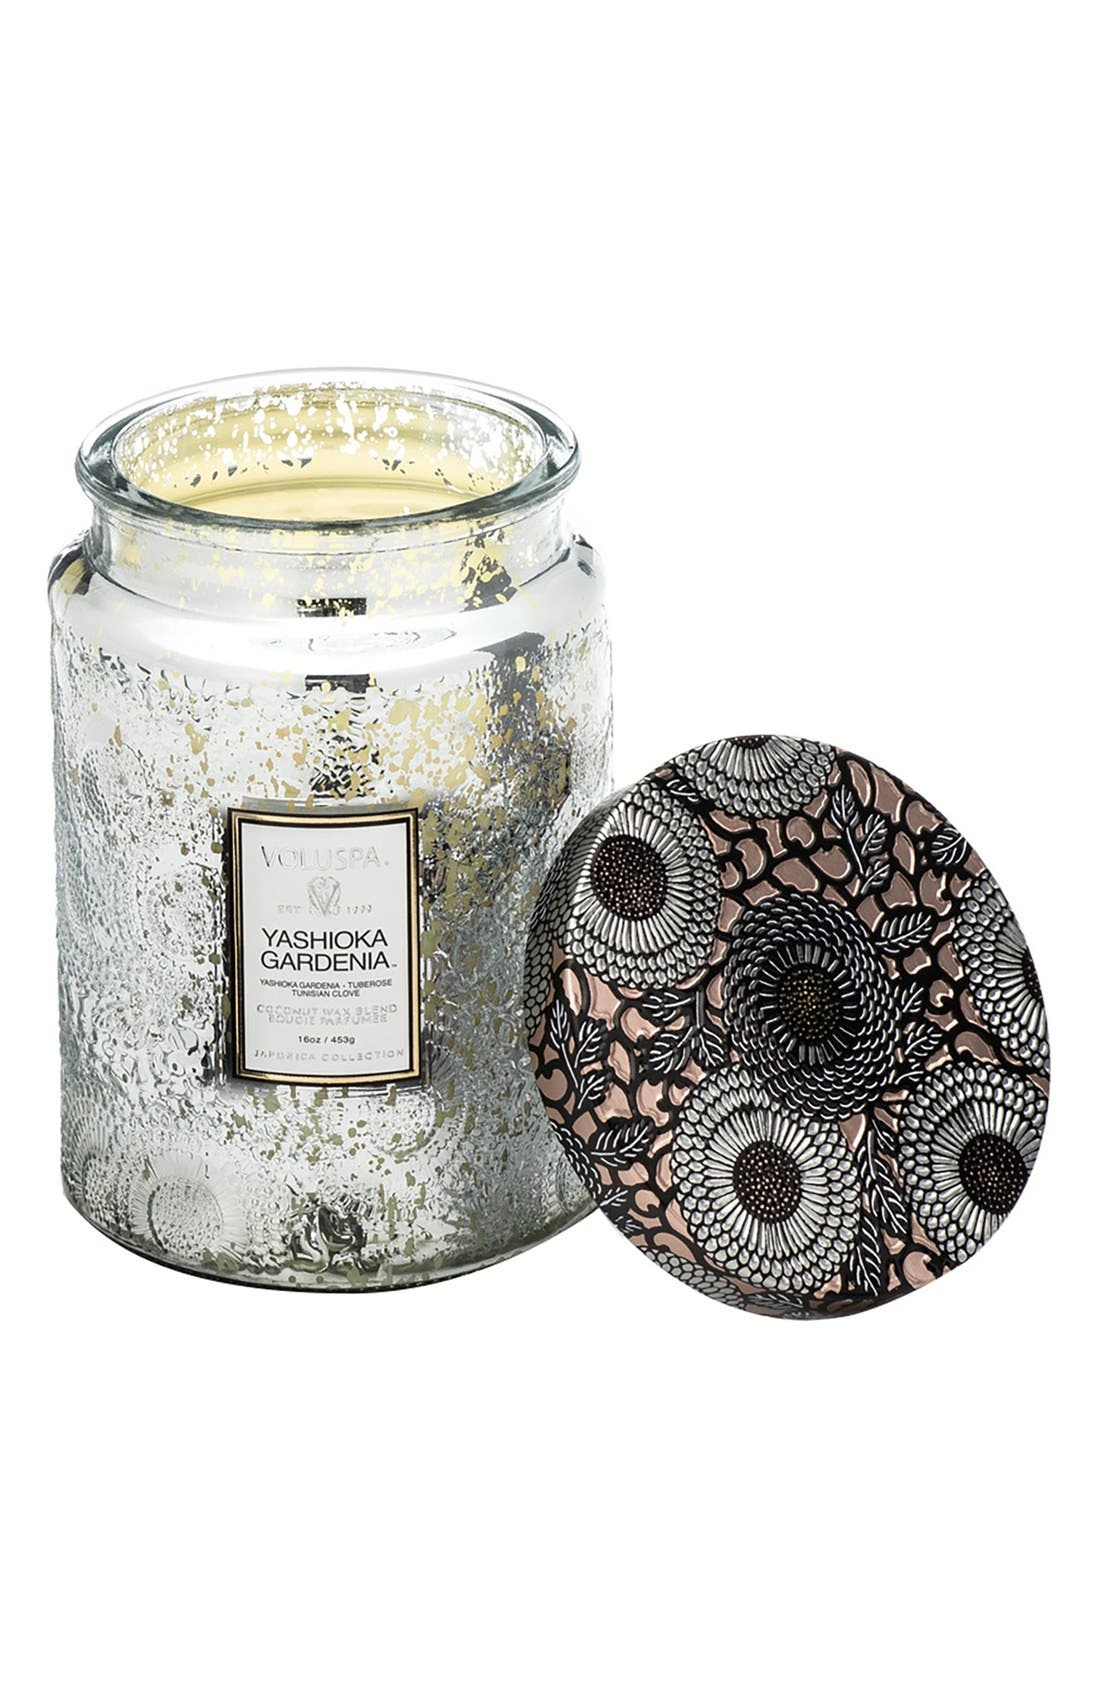 Japonica Yashioka Gardenia Large Embossed Glass Jar Candle,                         Main,                         color, Yashioka Gardenia